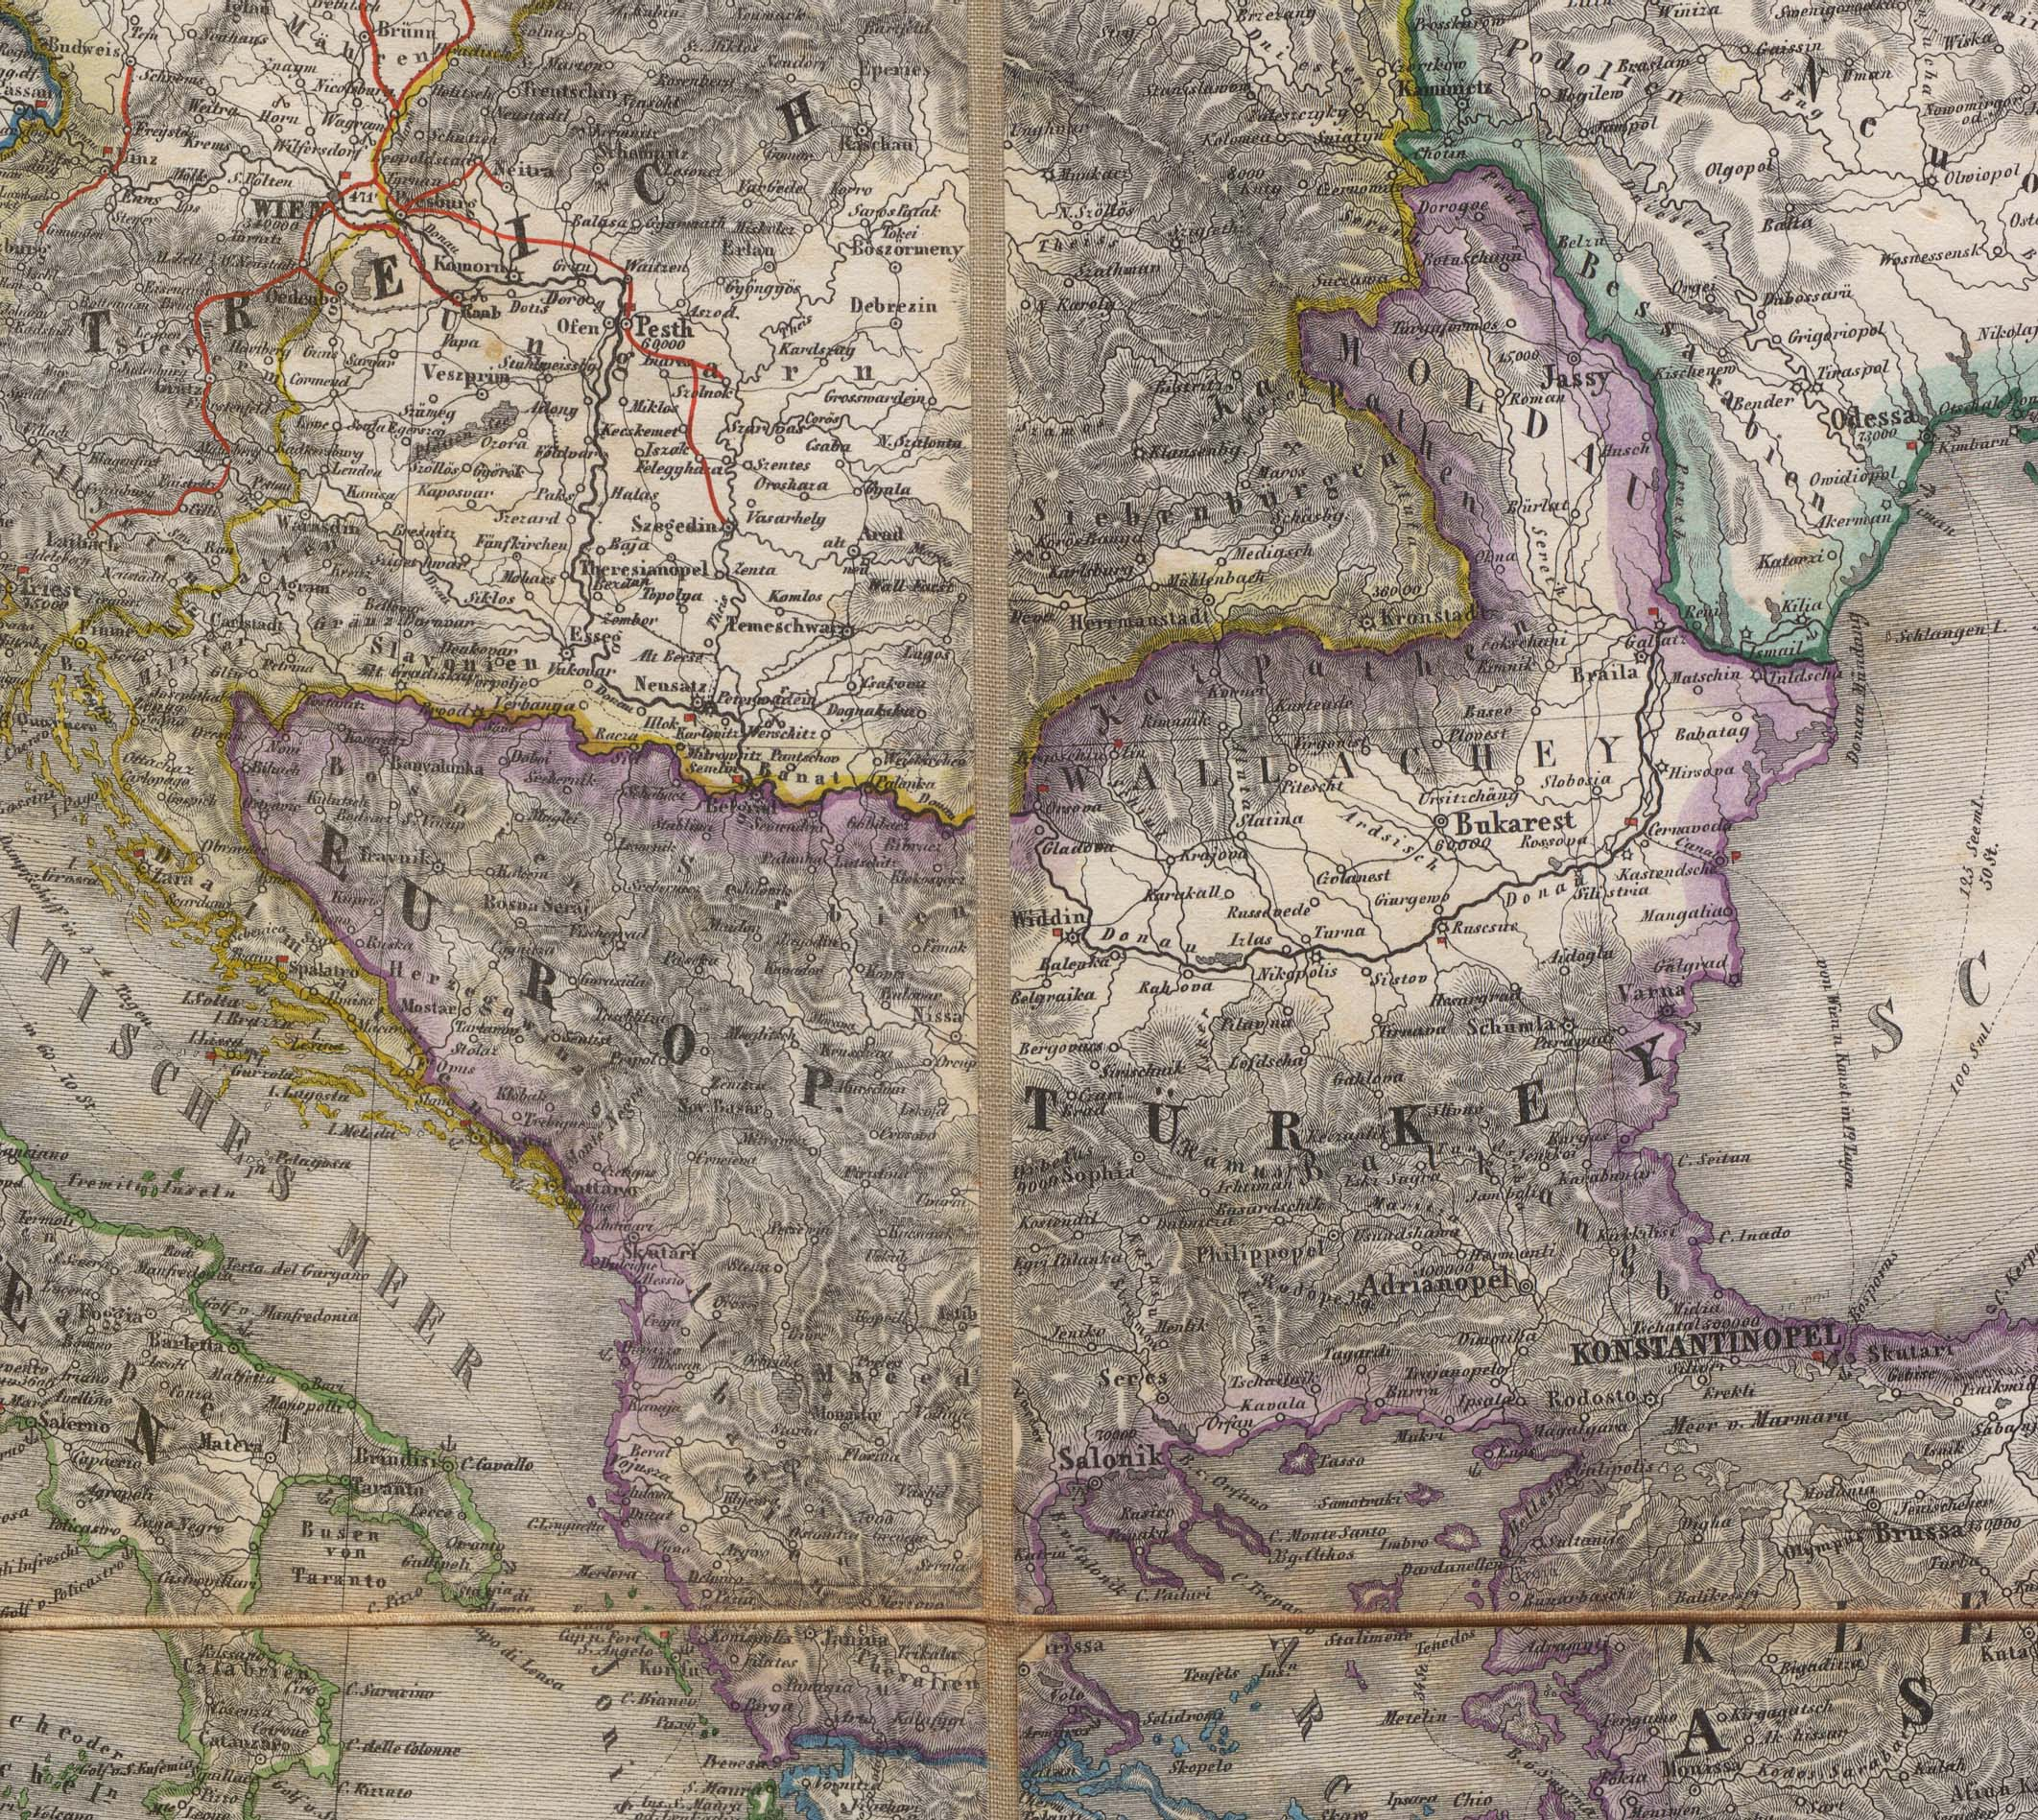 Portion of an 1856 map of Europe